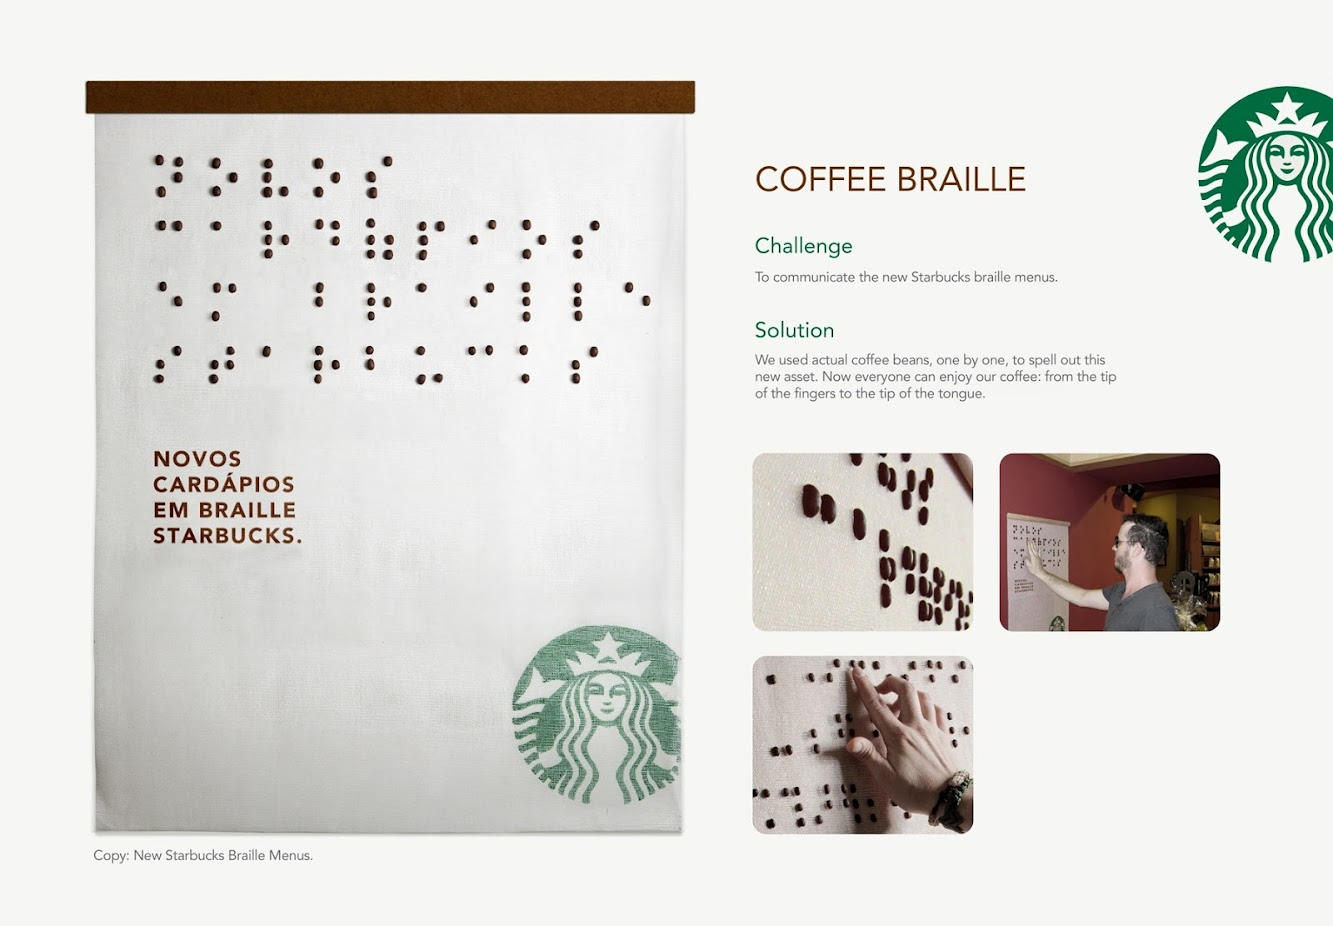 Coffee Bean Braille by Starbucks